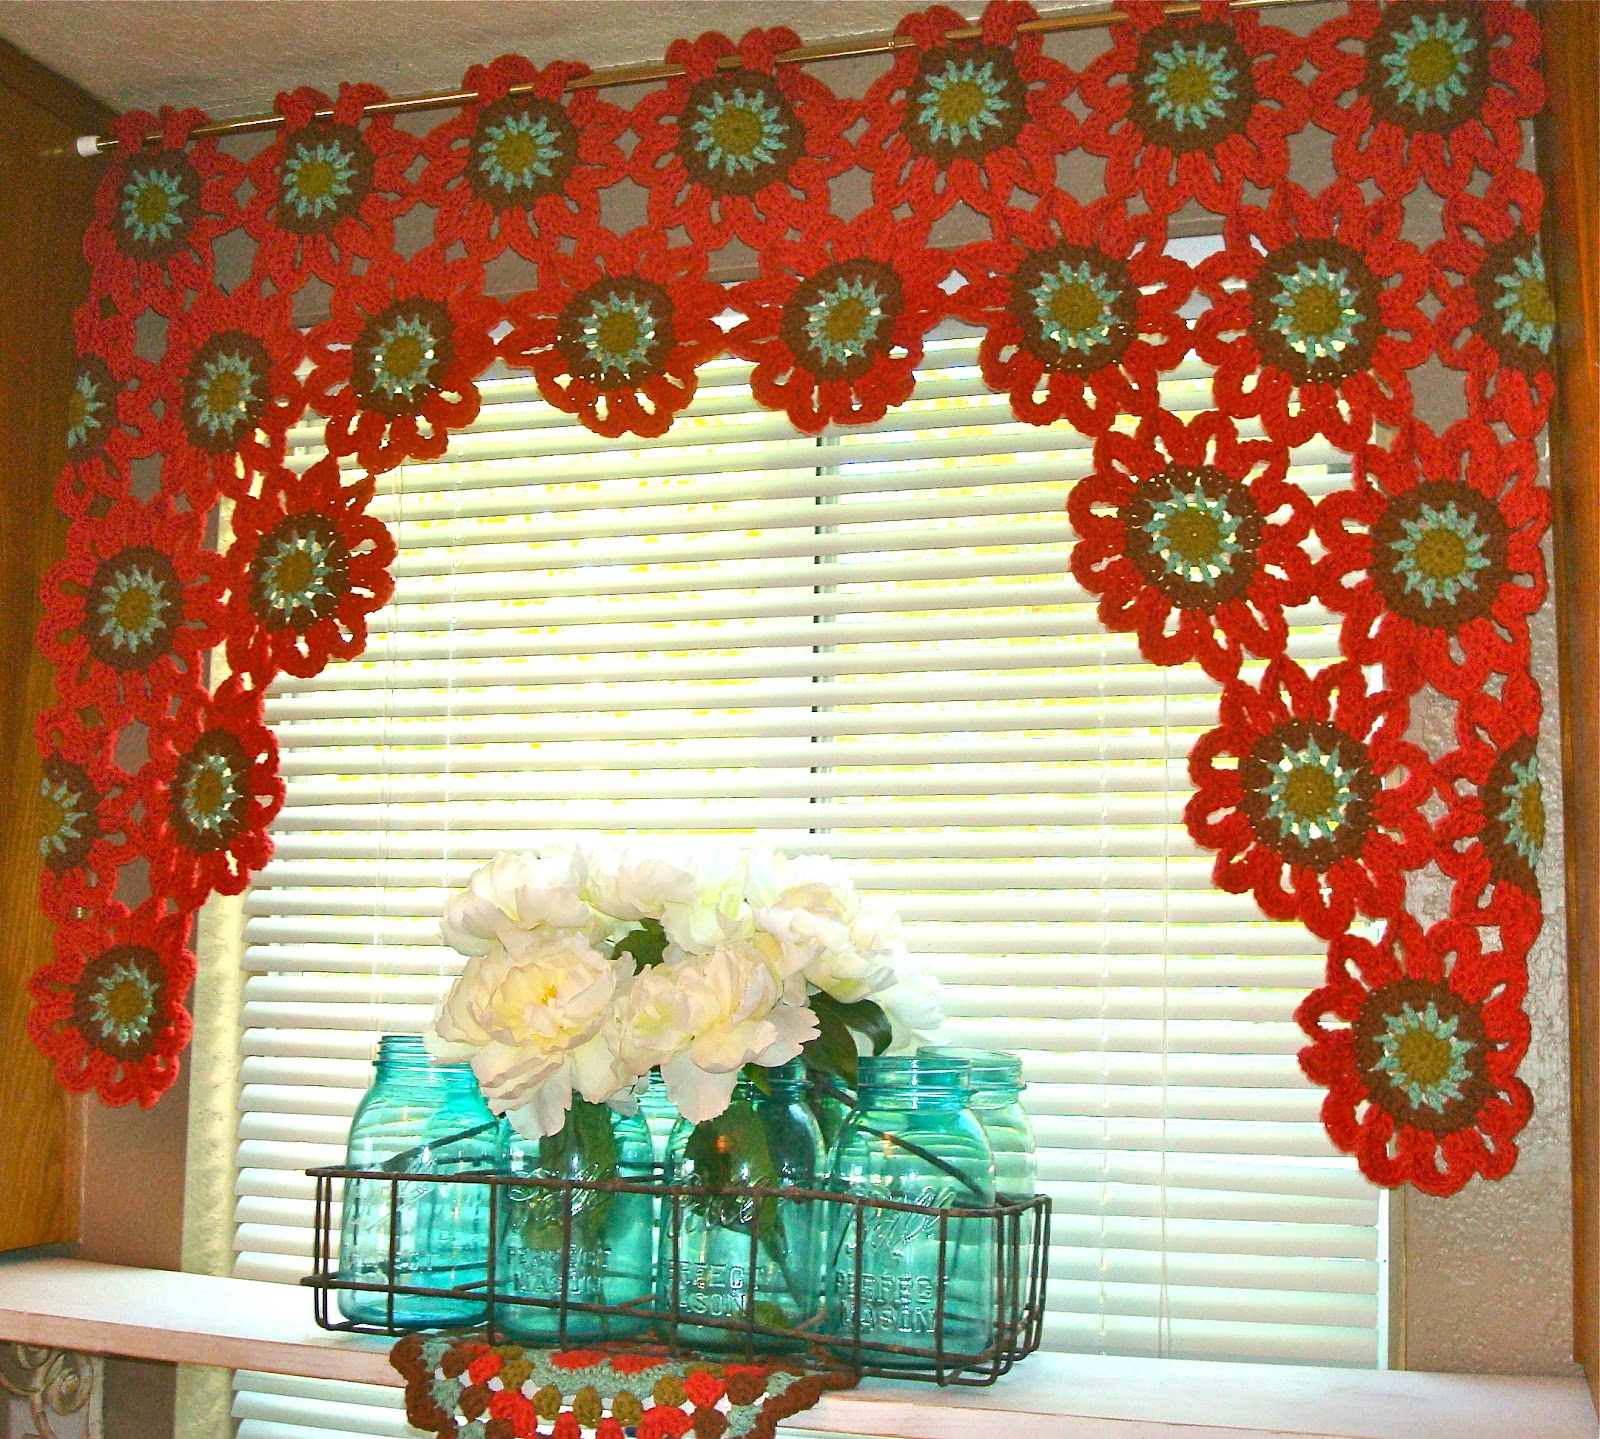 Once upon a pink moon flower power valance tutorial